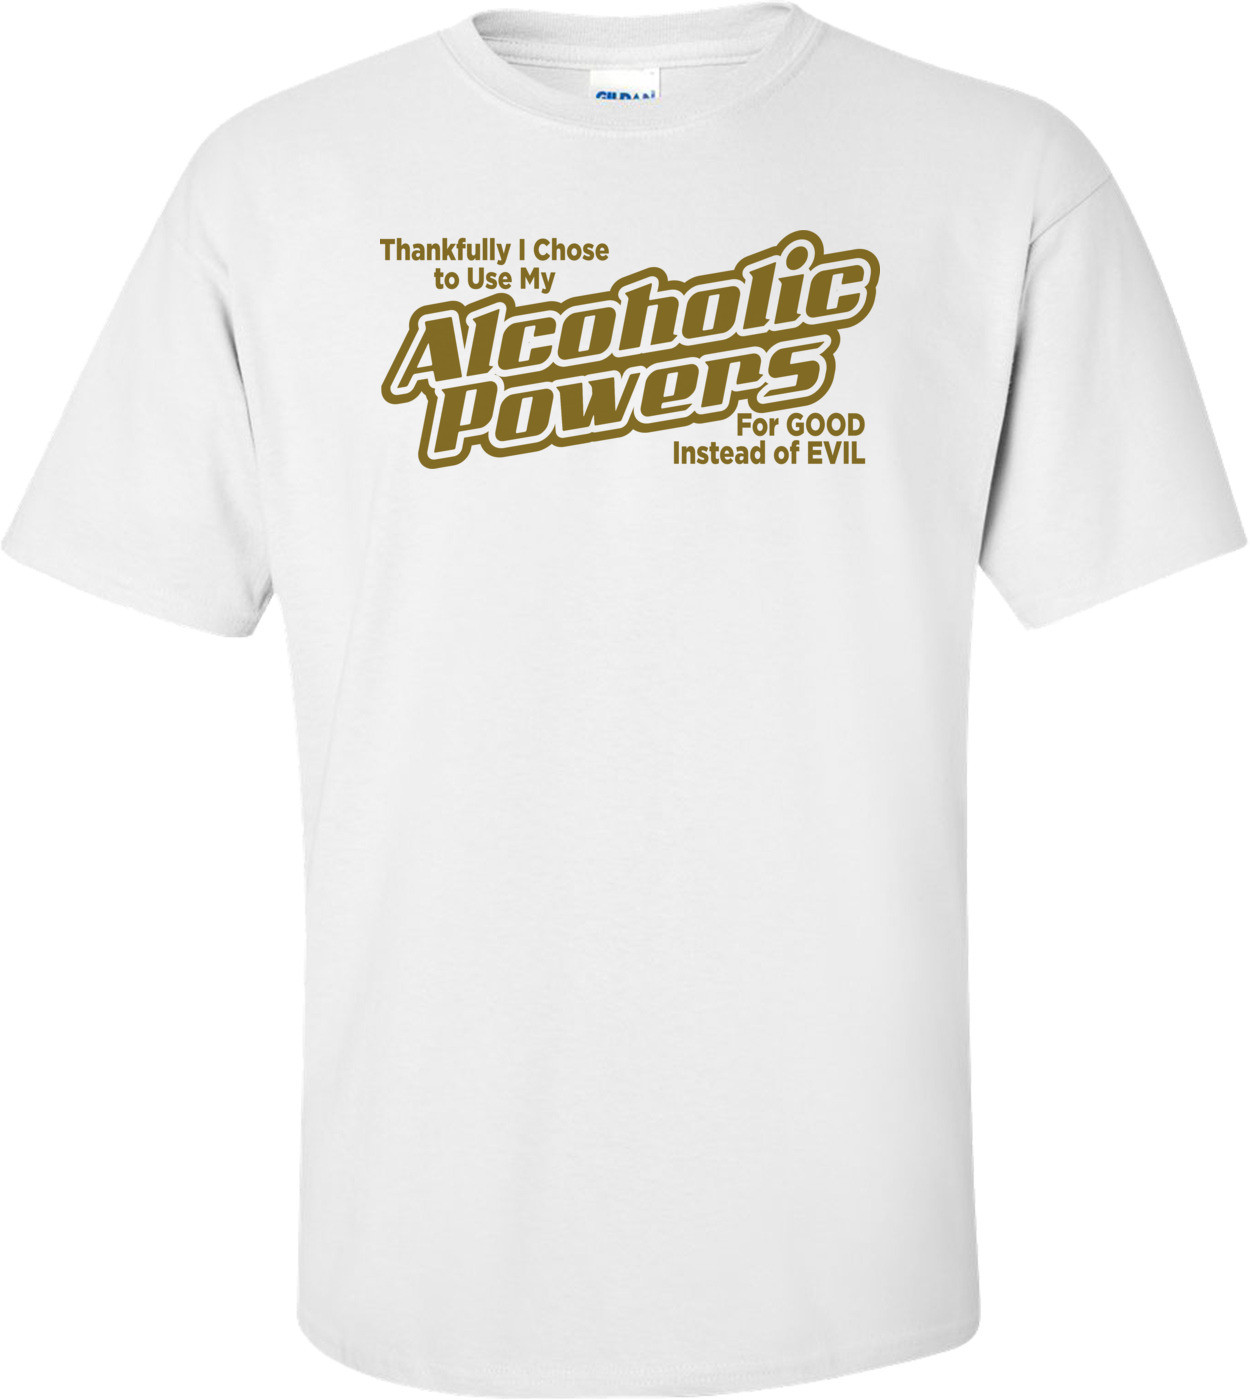 Thankfully I Chose To Use My Alcoholic Powers For Good Instead Of Evil T-shirt